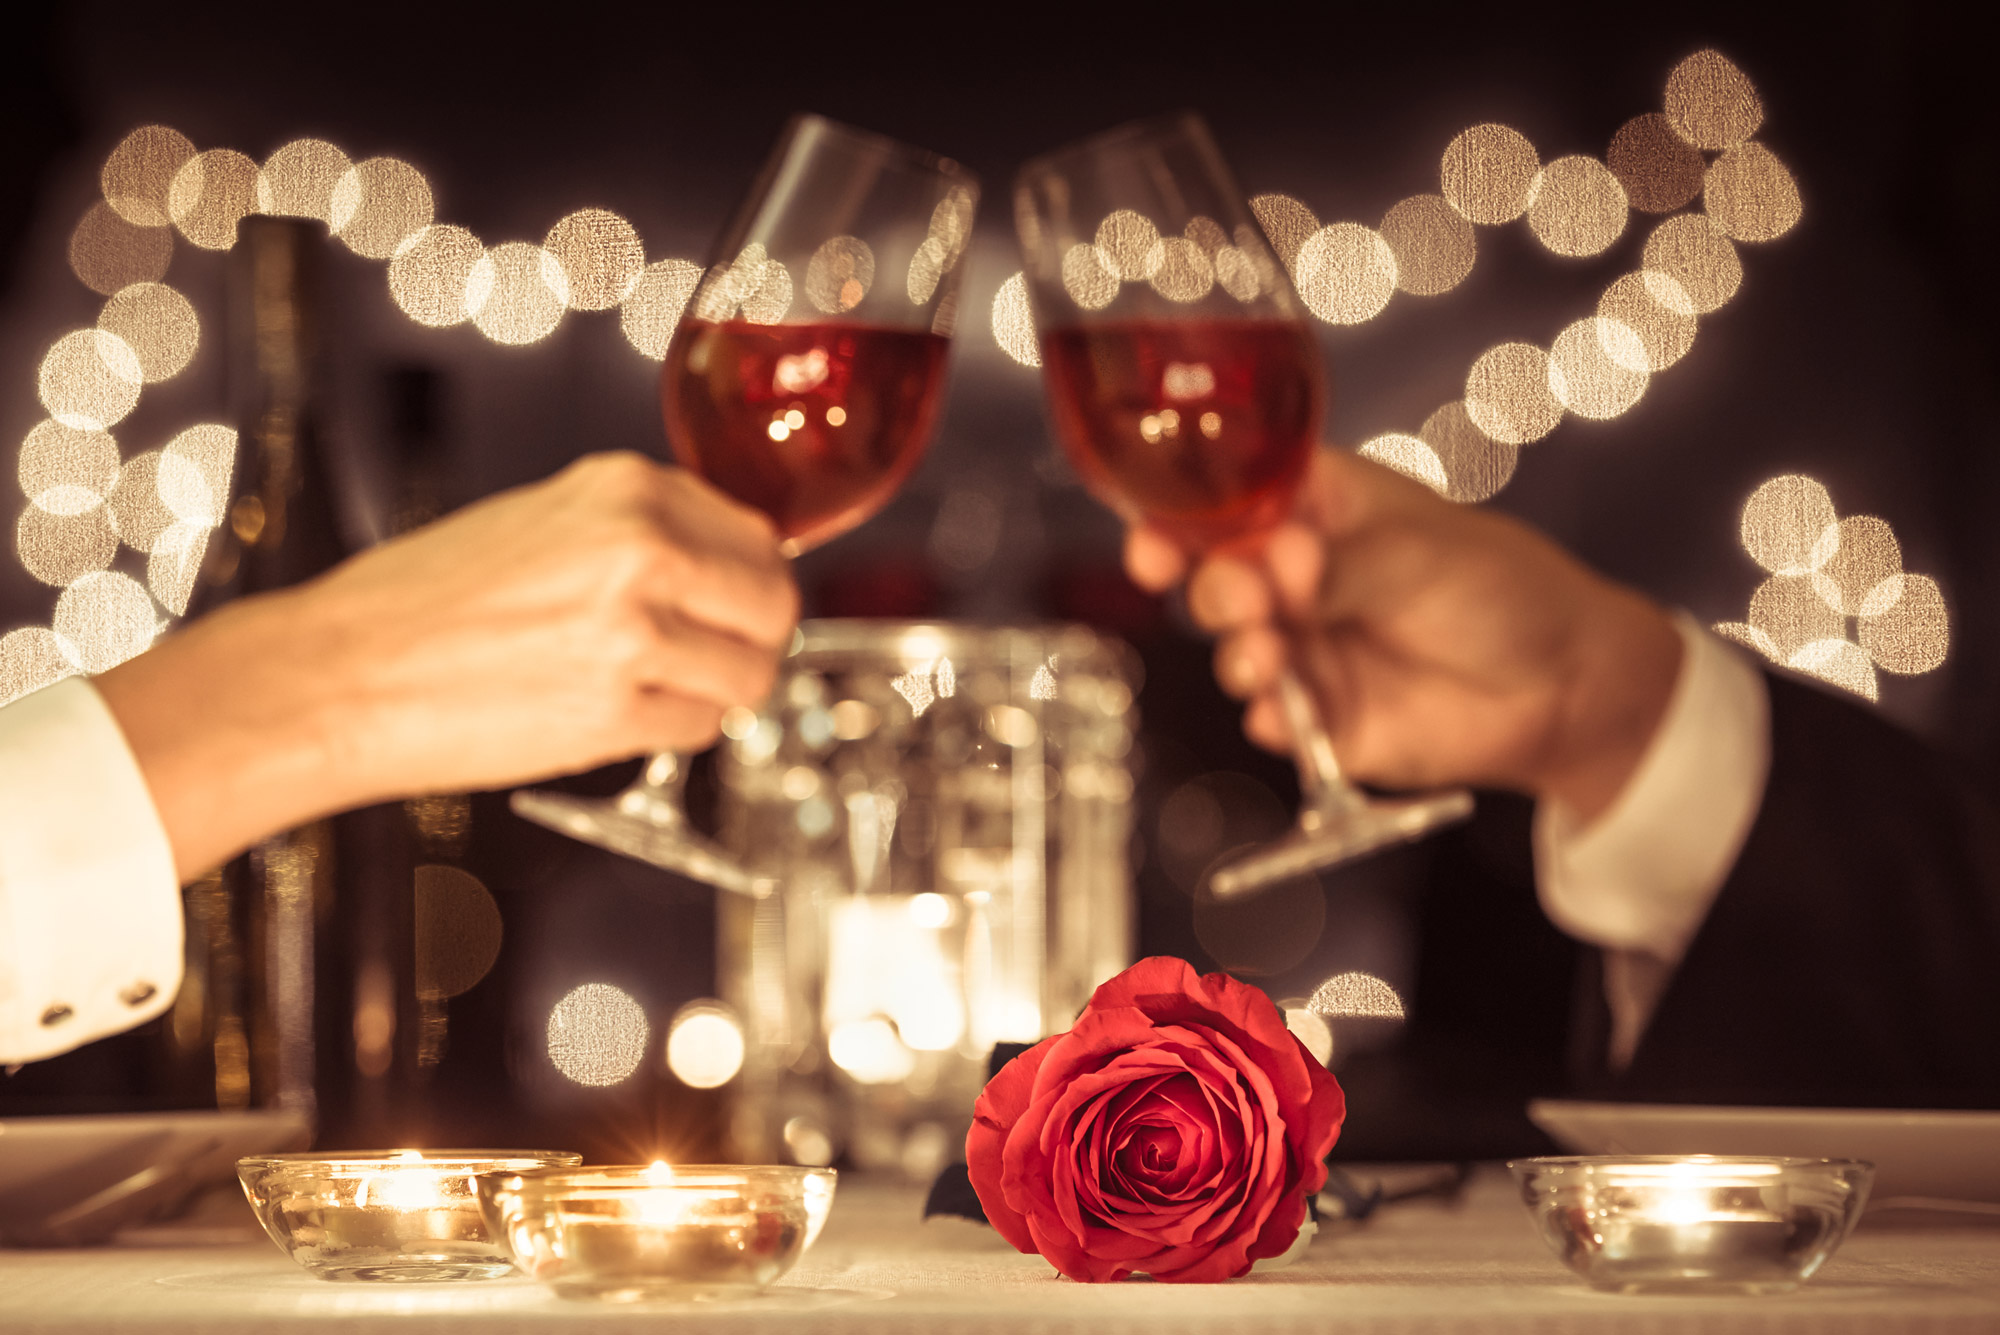 A photo of two people clinking wine glasses.